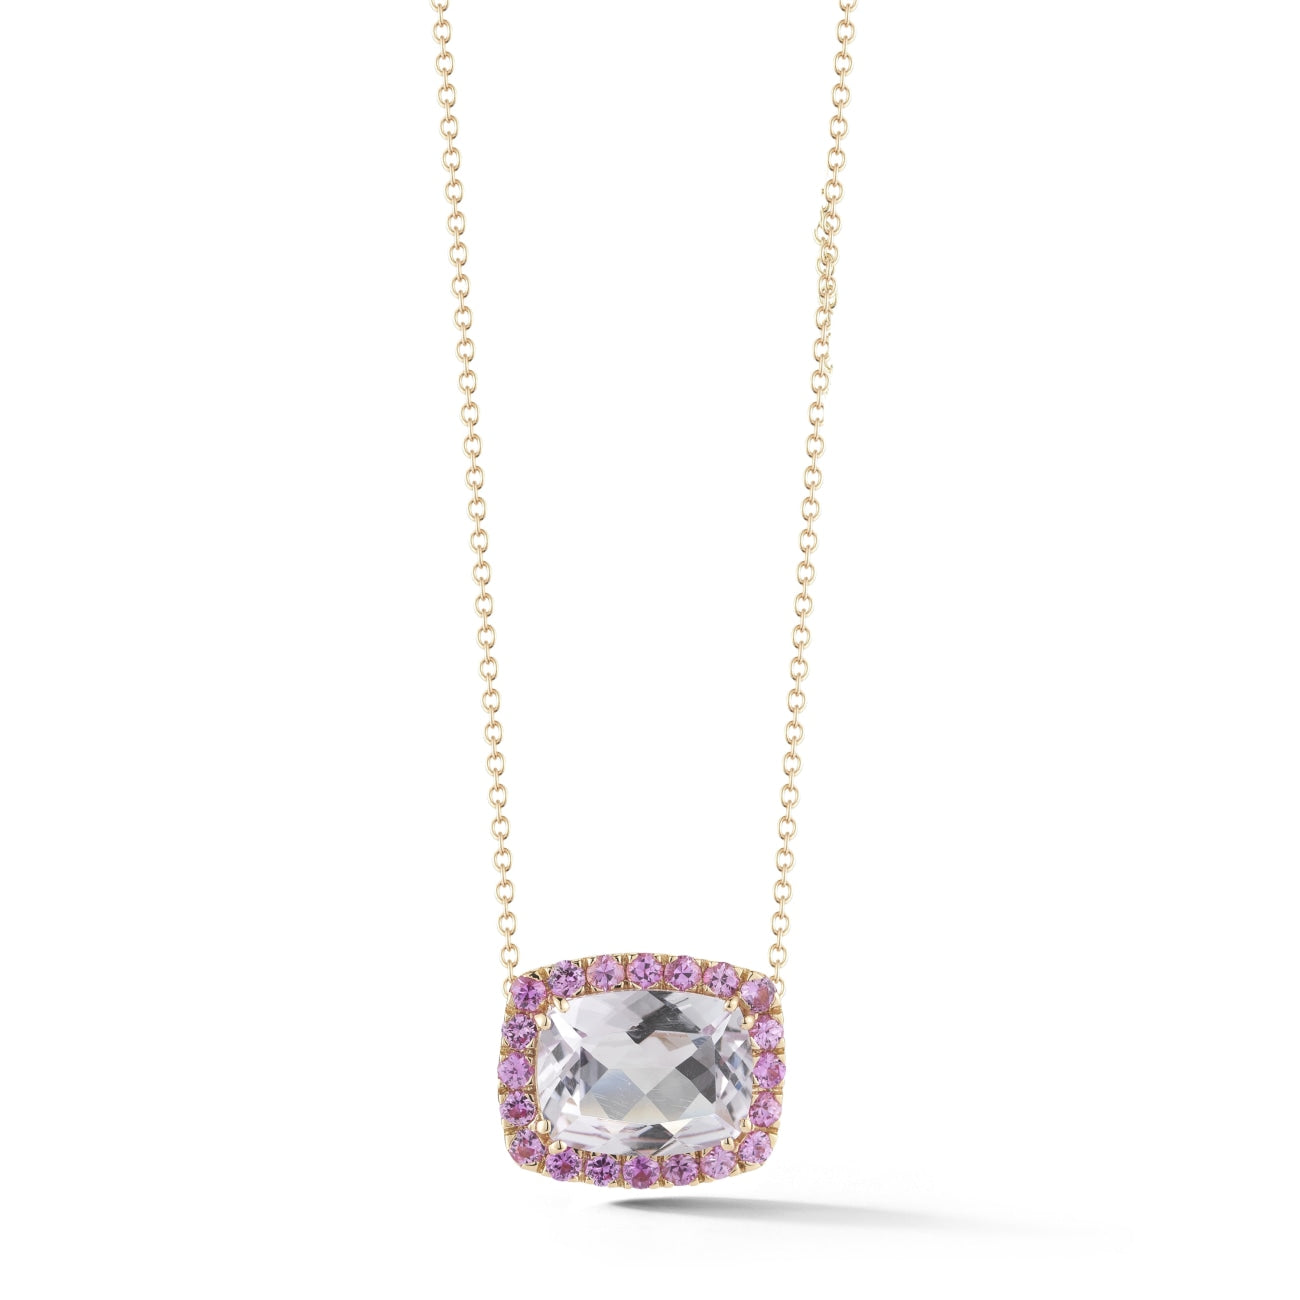 A & Furst Jewelry - Dynamite pink sapphires and rose pendant | Manfredi Jewels